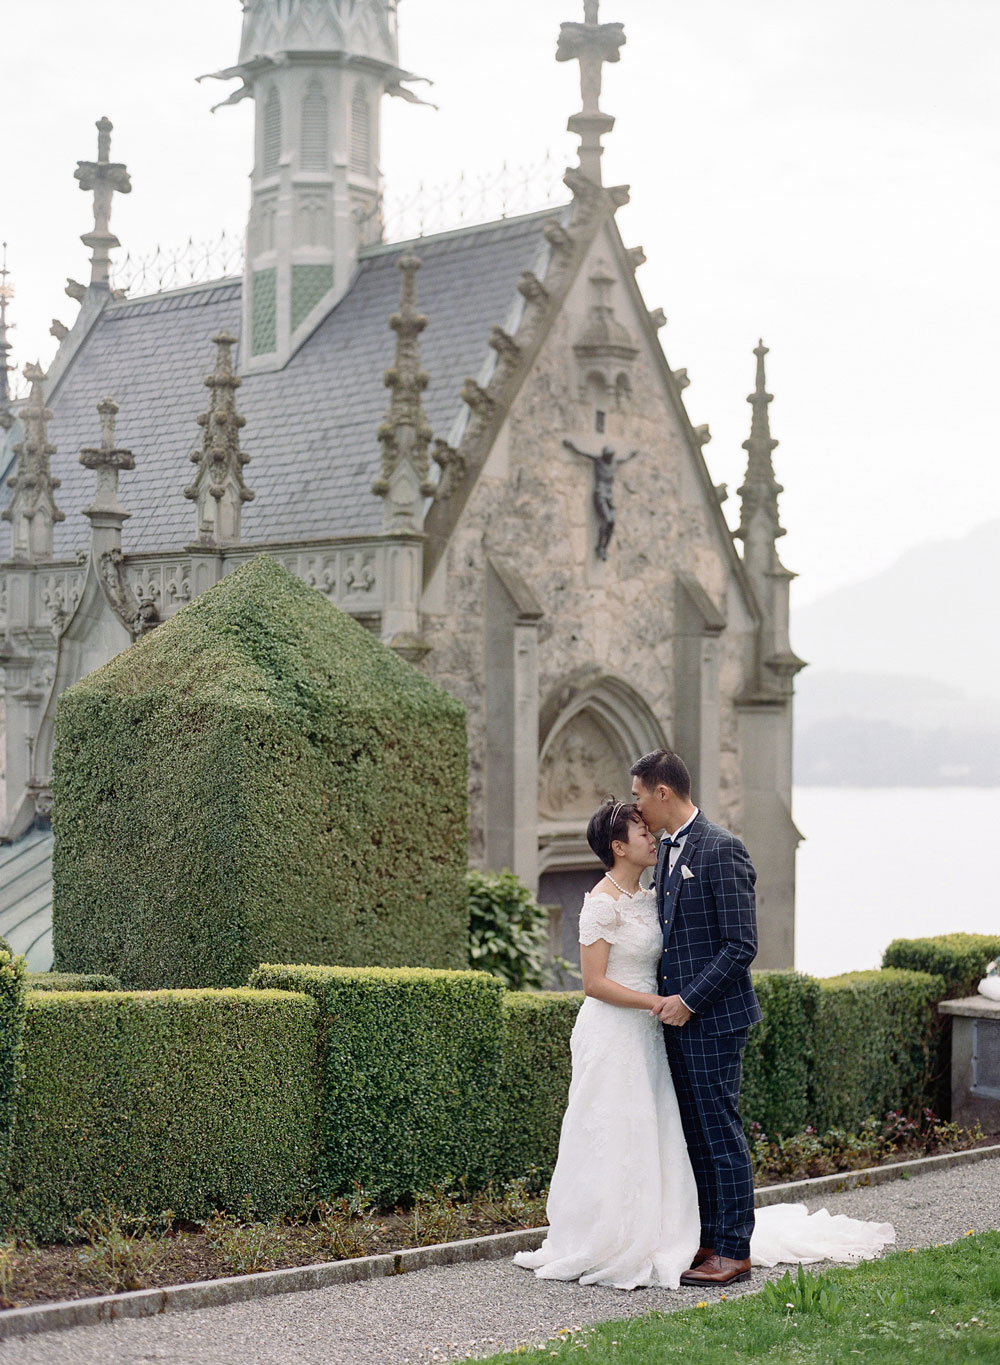 Minnie-William-prewedding-pictures-Interlaken-Luzern-13